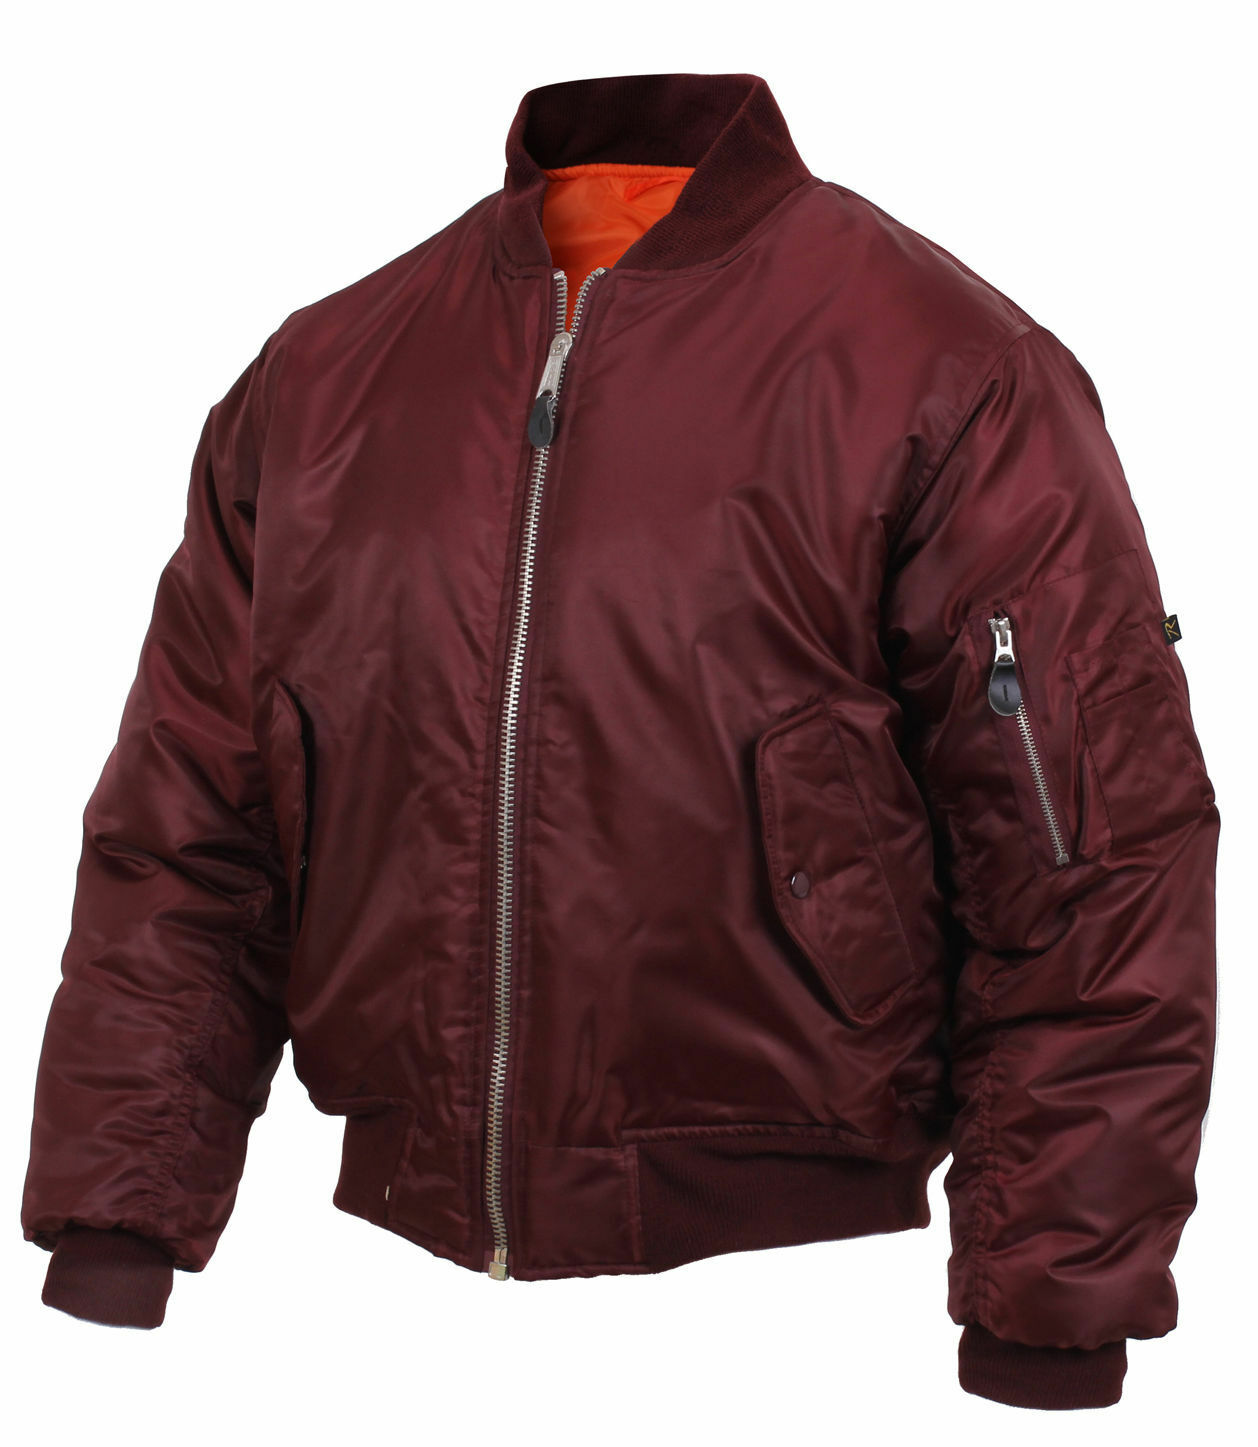 Rothco MENS Flight Jacket Maroon MA1 Military Style MA-1 Bom